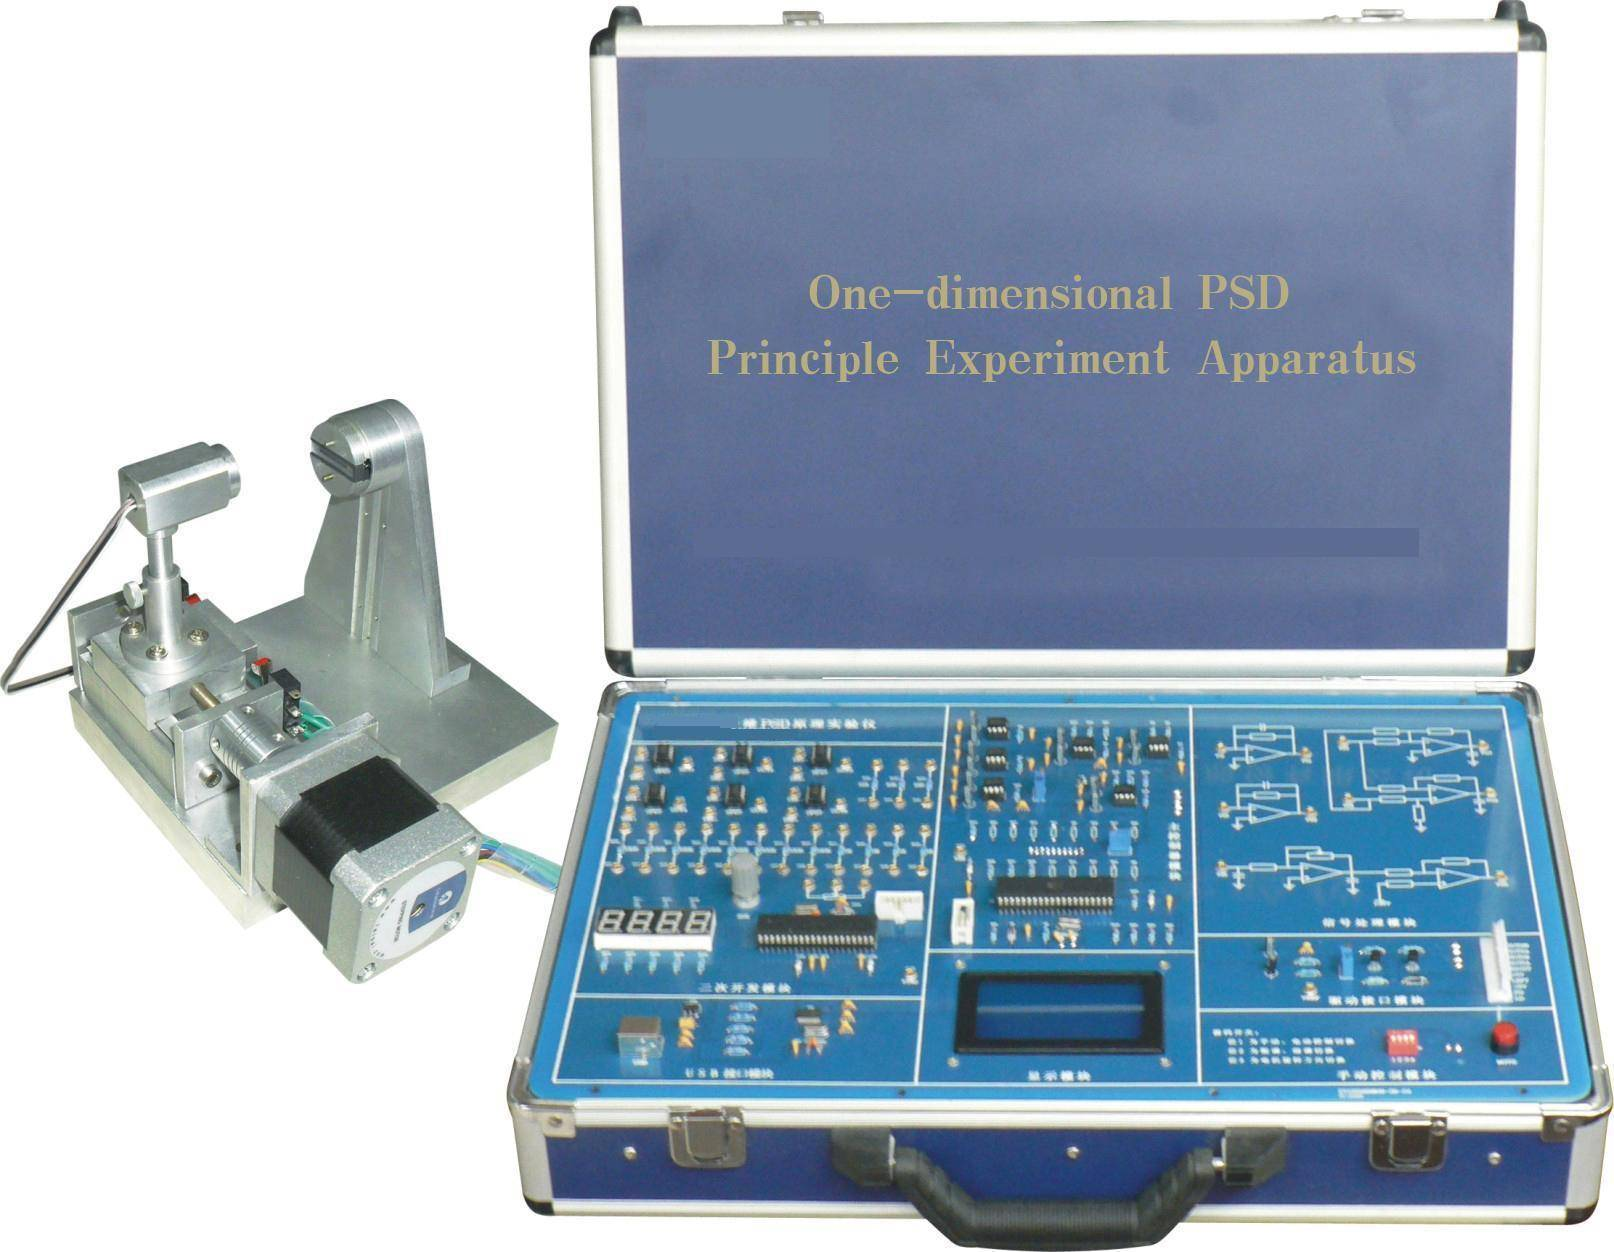 idactic educational equipment training device/ ES7408B One-Dimensional PSD Principle Experiment Appa